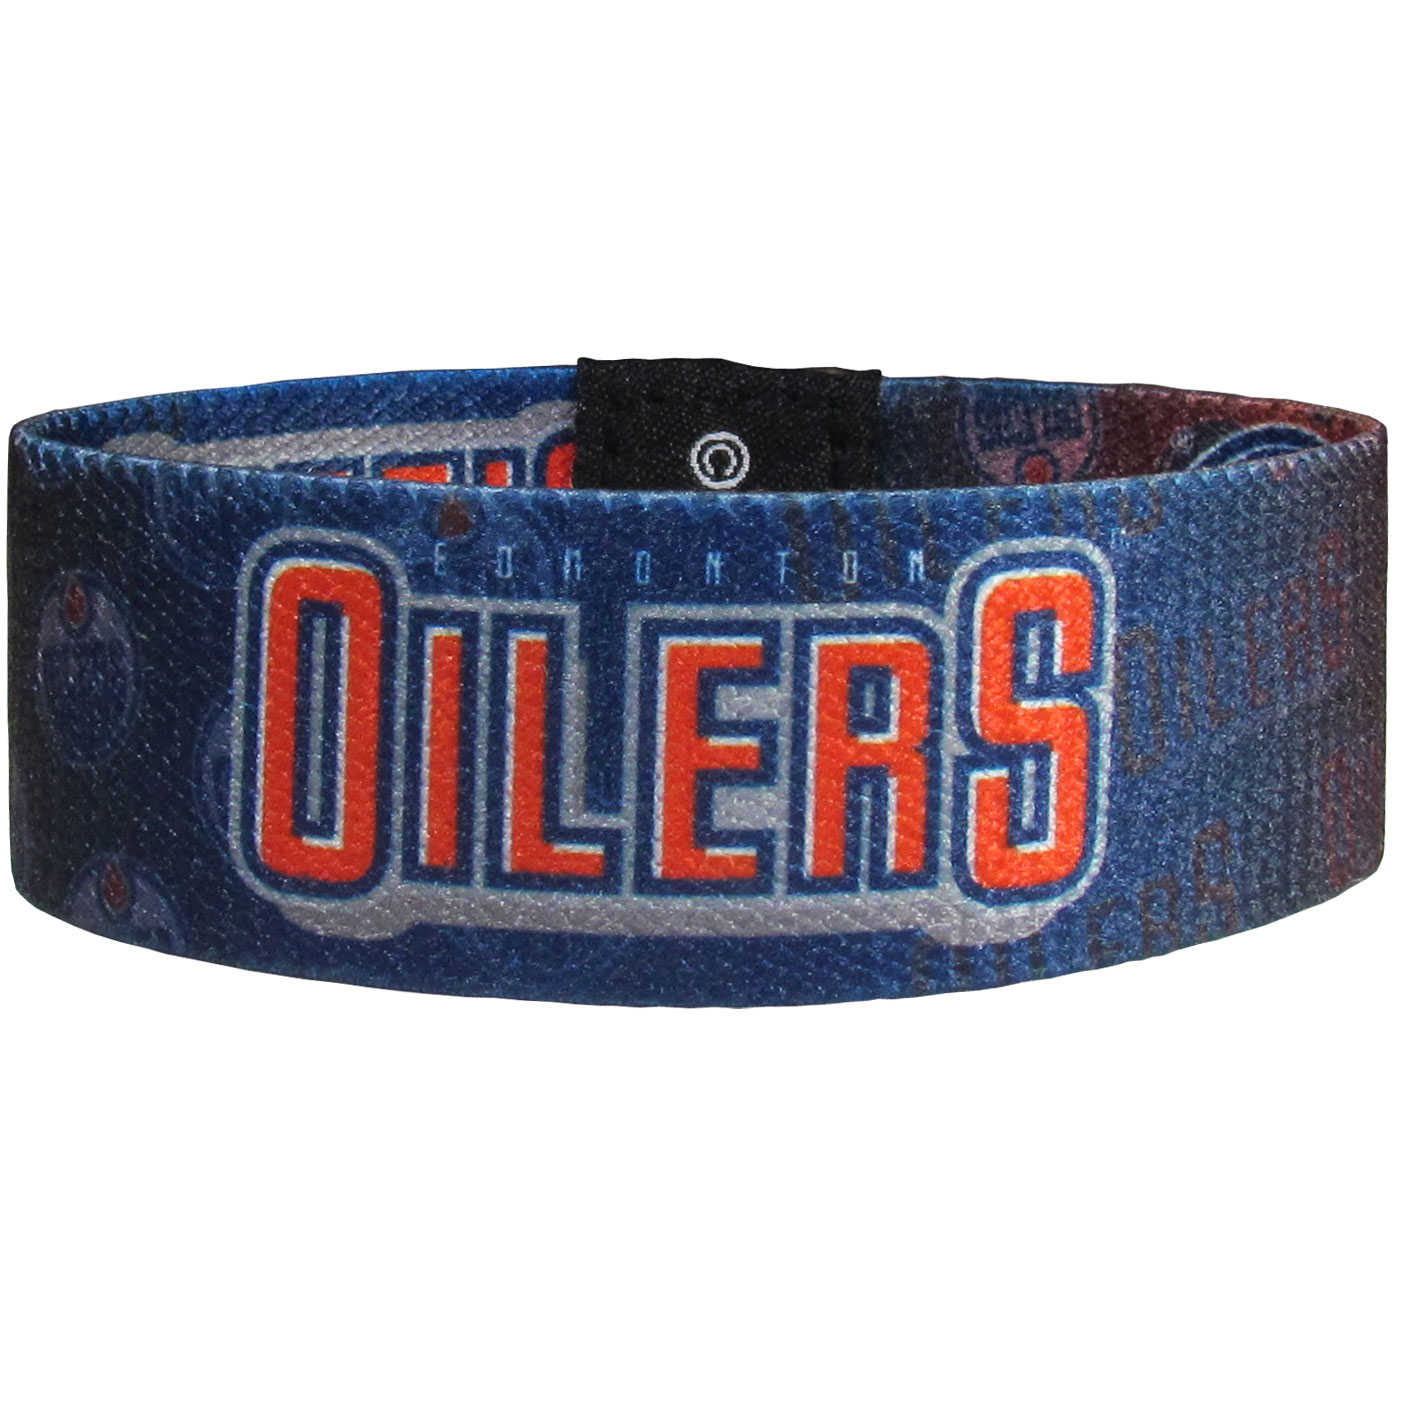 Edmonton Oilers® Stretch Bracelets - Instantly become a team VIP with these colorful wrist bands! These are not your average, cheap stretch bands the stretch fabric and dye sublimation allows the crisp graphics and logo designs to really pop. A must have for any Edmonton Oilers® fan!